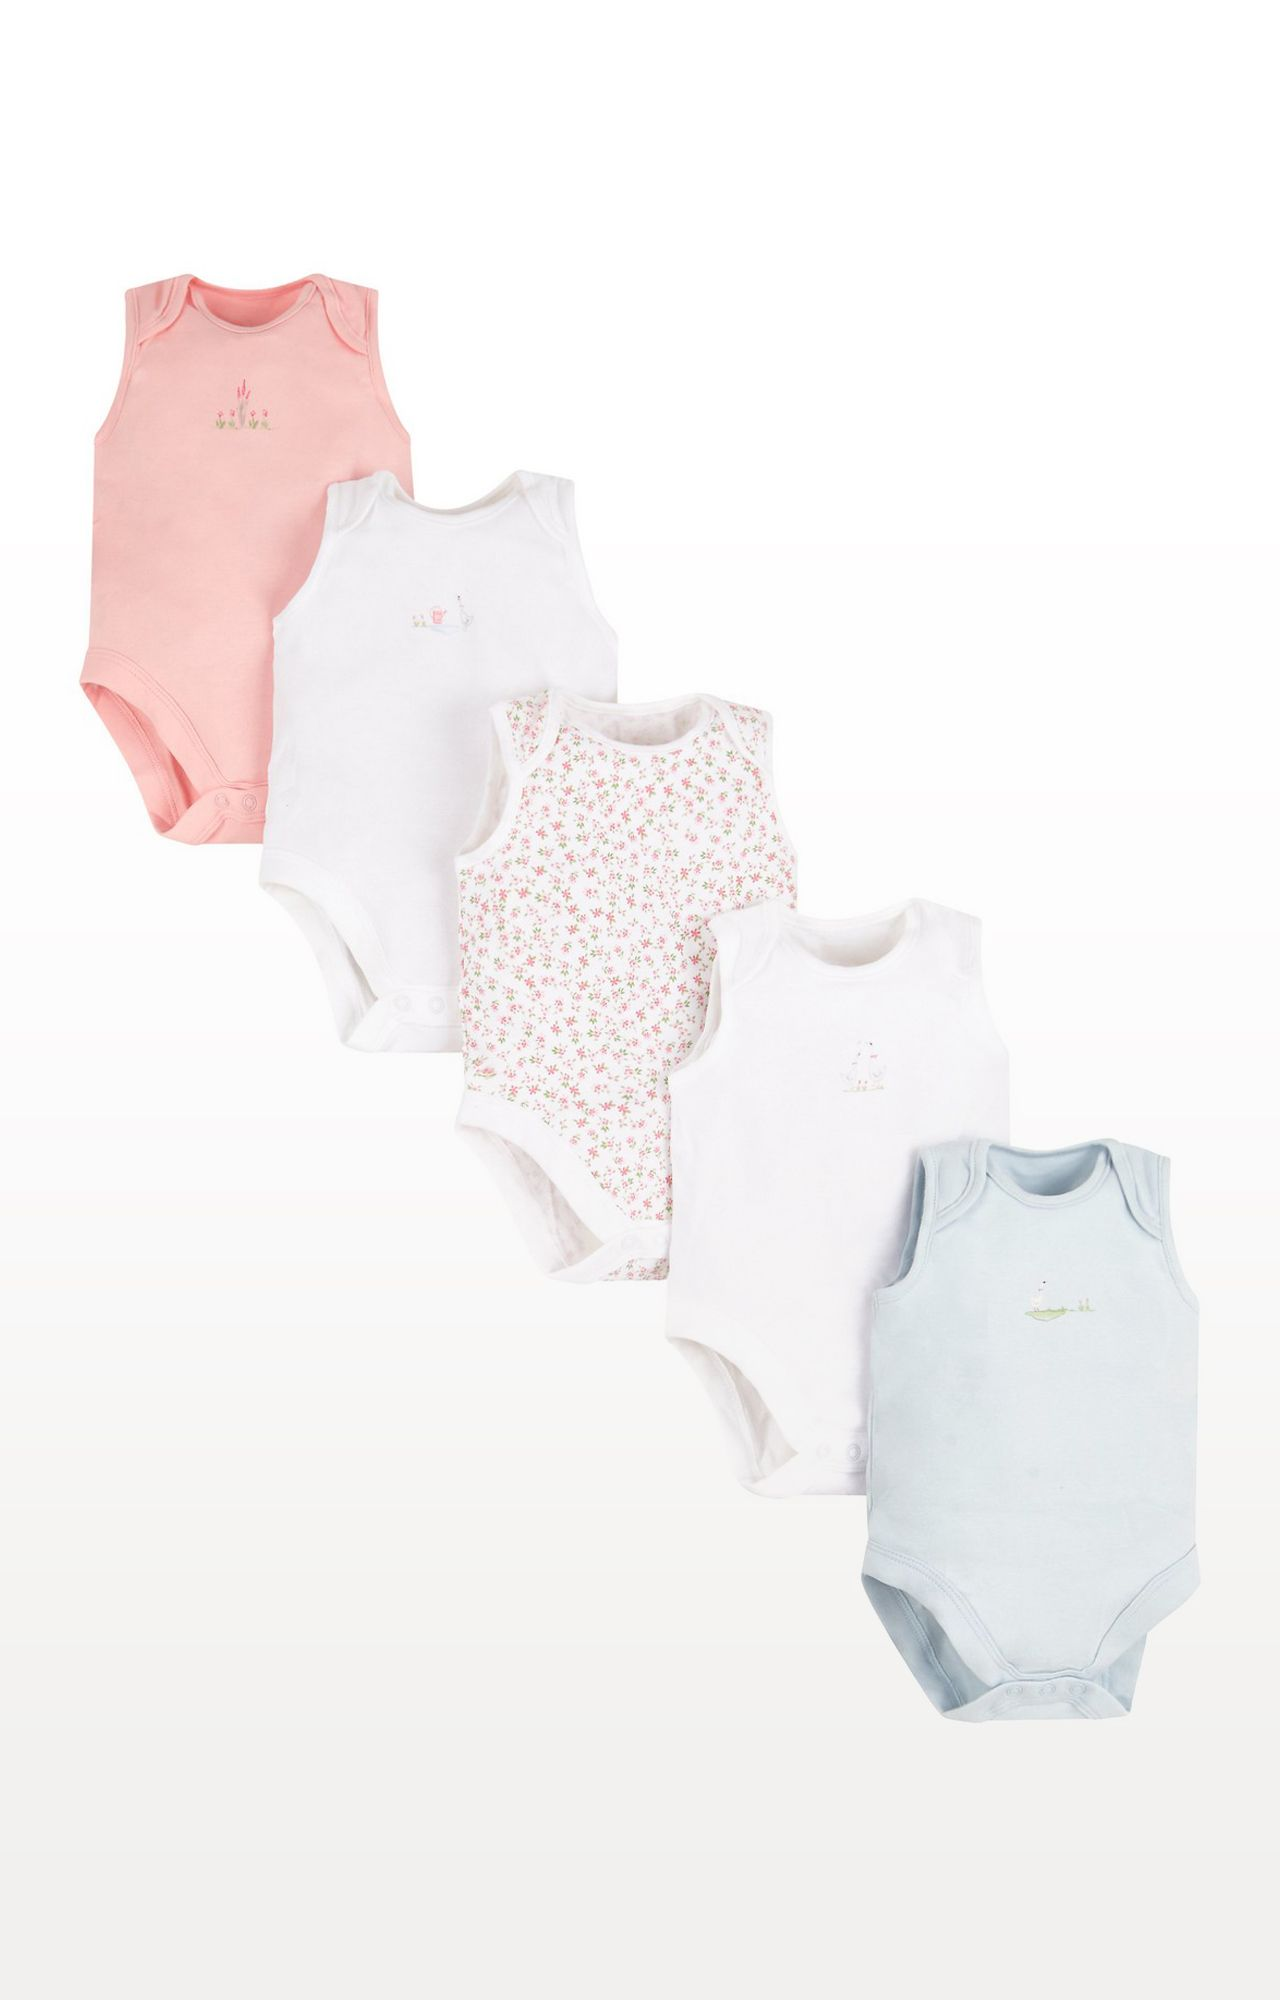 Mothercare | Pink Printed Floral Geese Bodysuits - Pack of 5